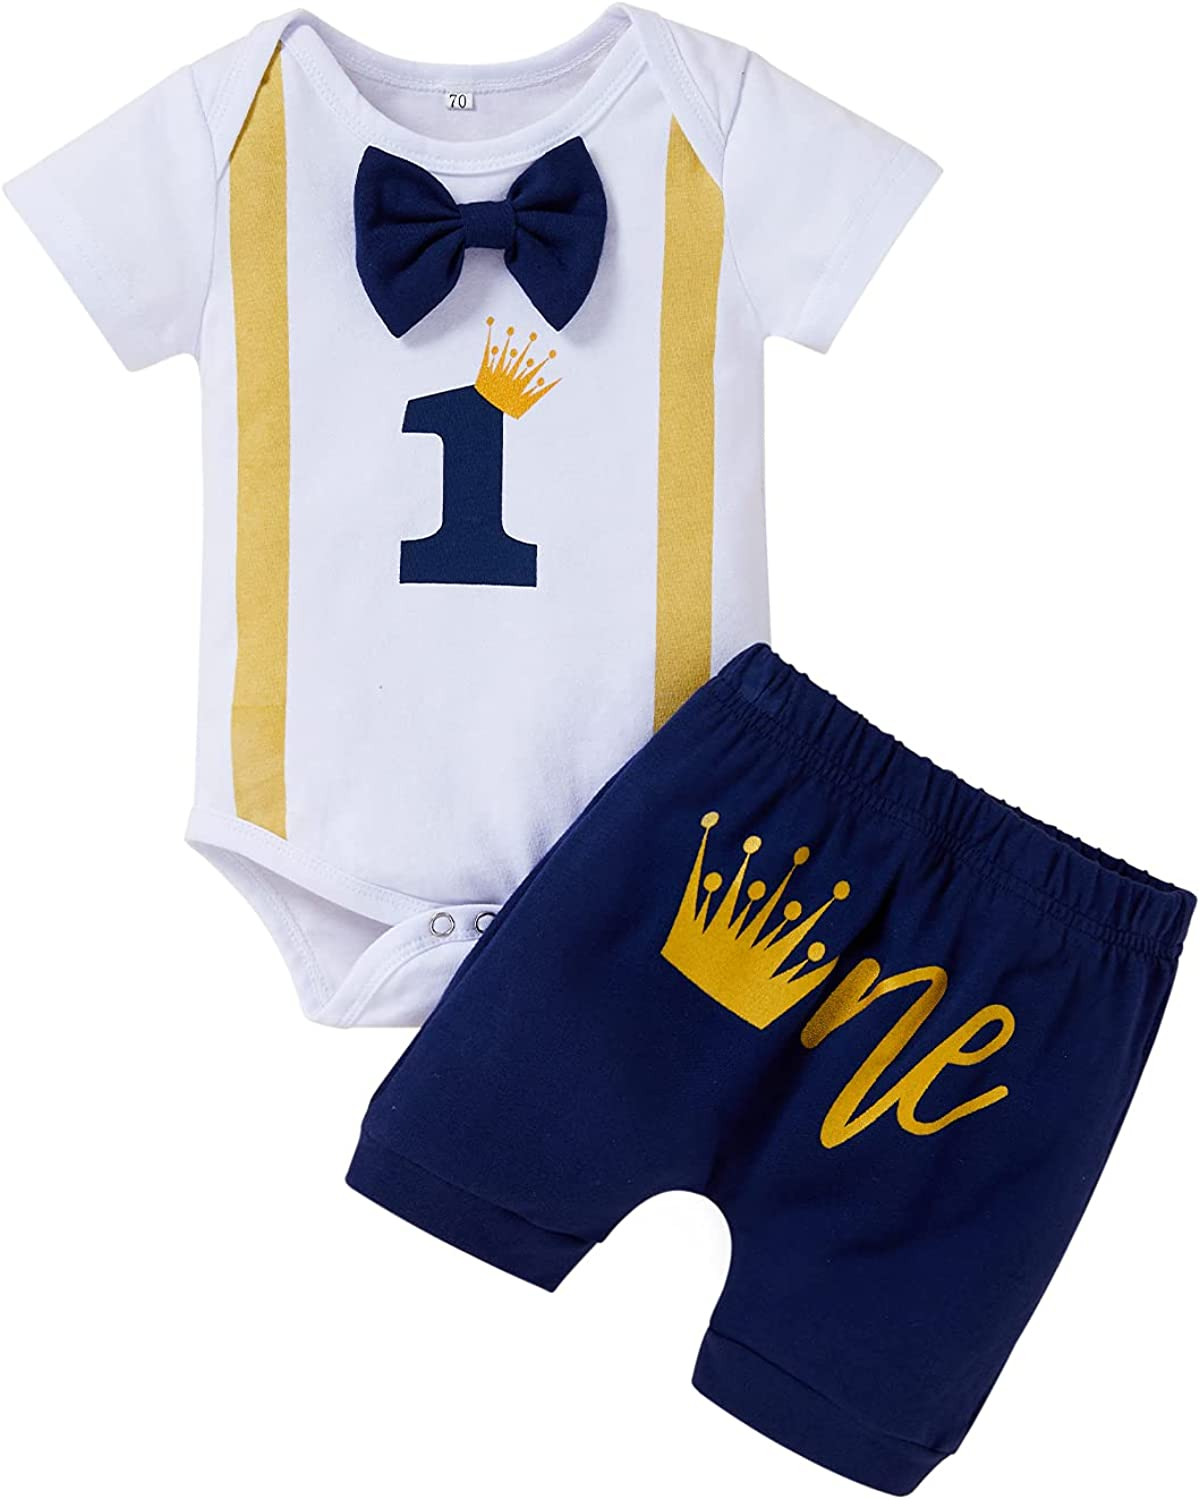 Baby Boy 1st Crown Birthday Infant Shorts Max 76% OFF Gentleman OFFicial mail order Set Bow